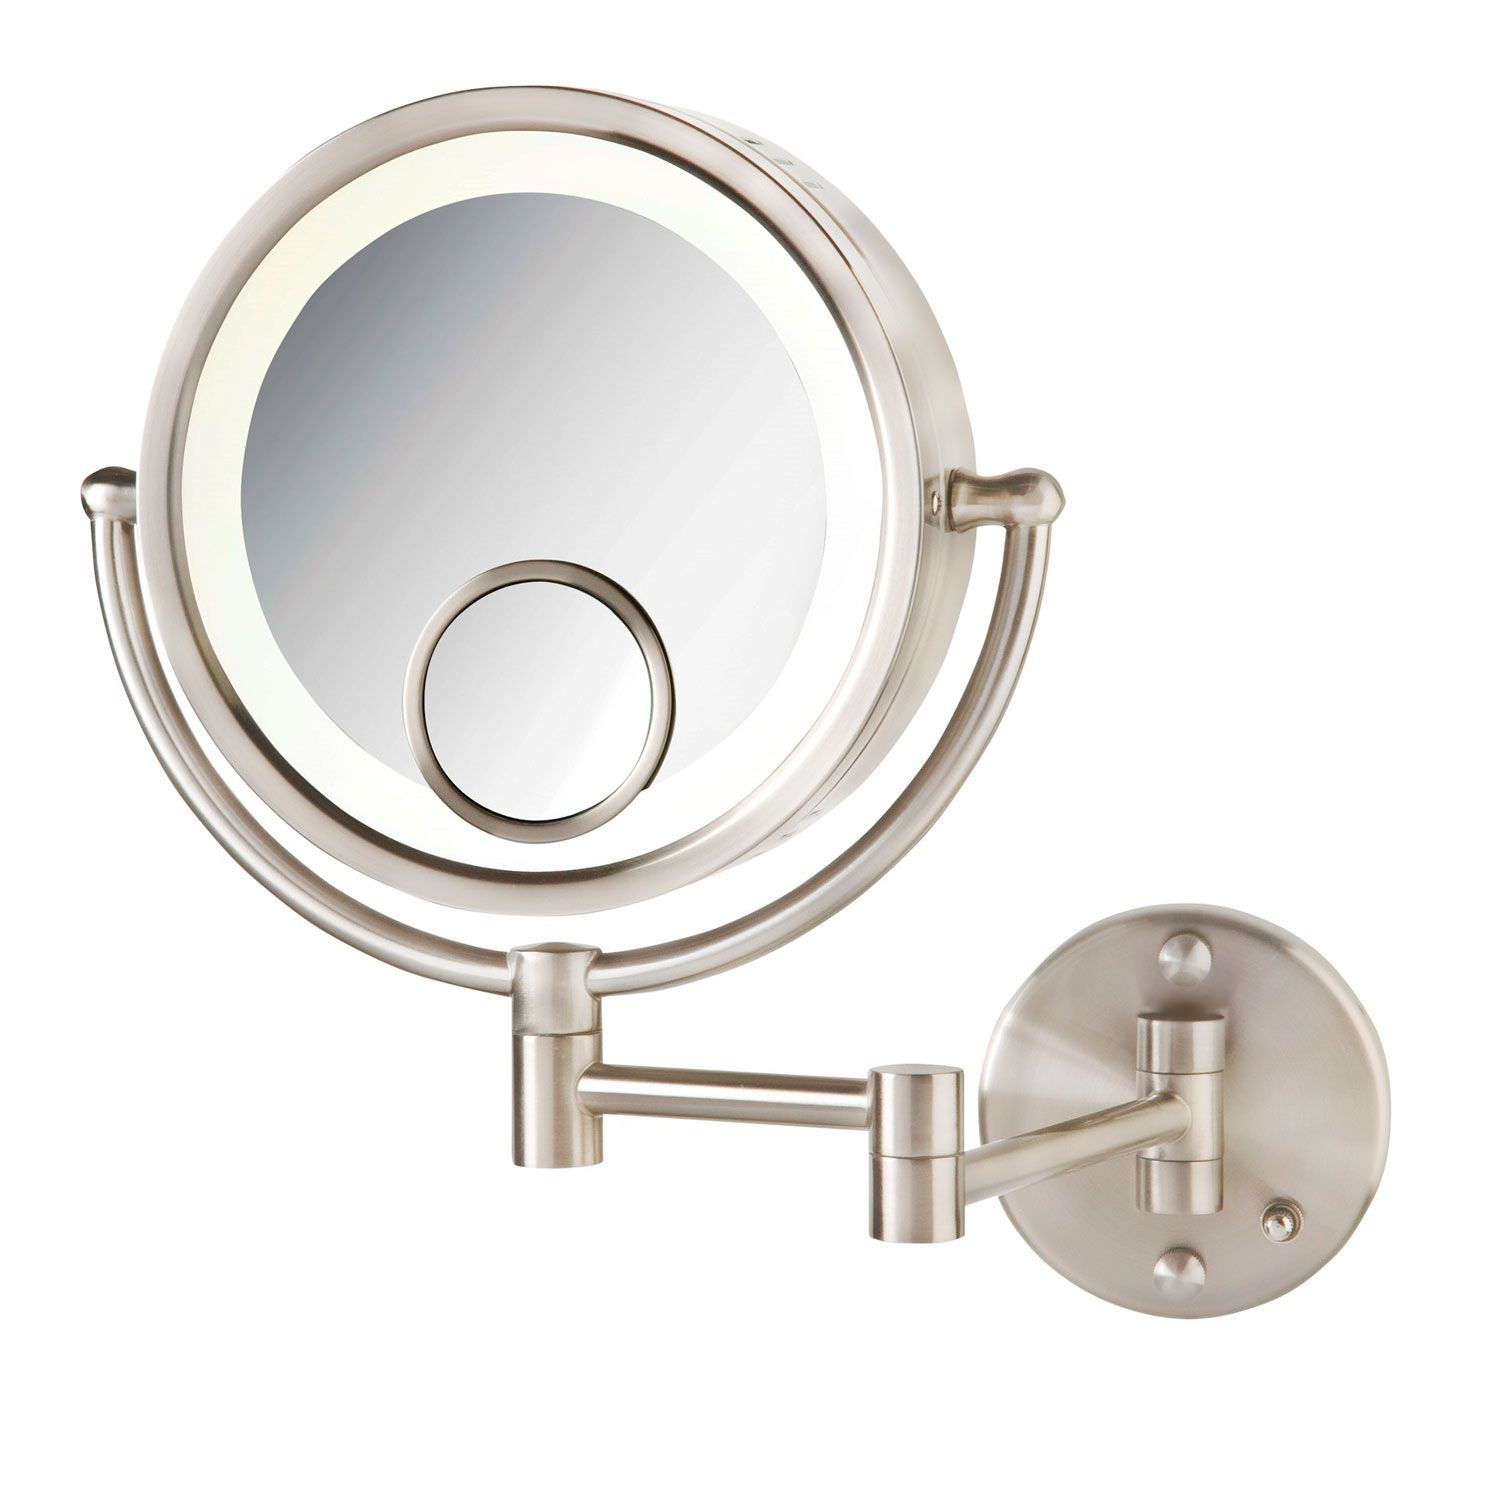 Halo Swinging Lighted Round Vanity Mirror With Insert In Brushed